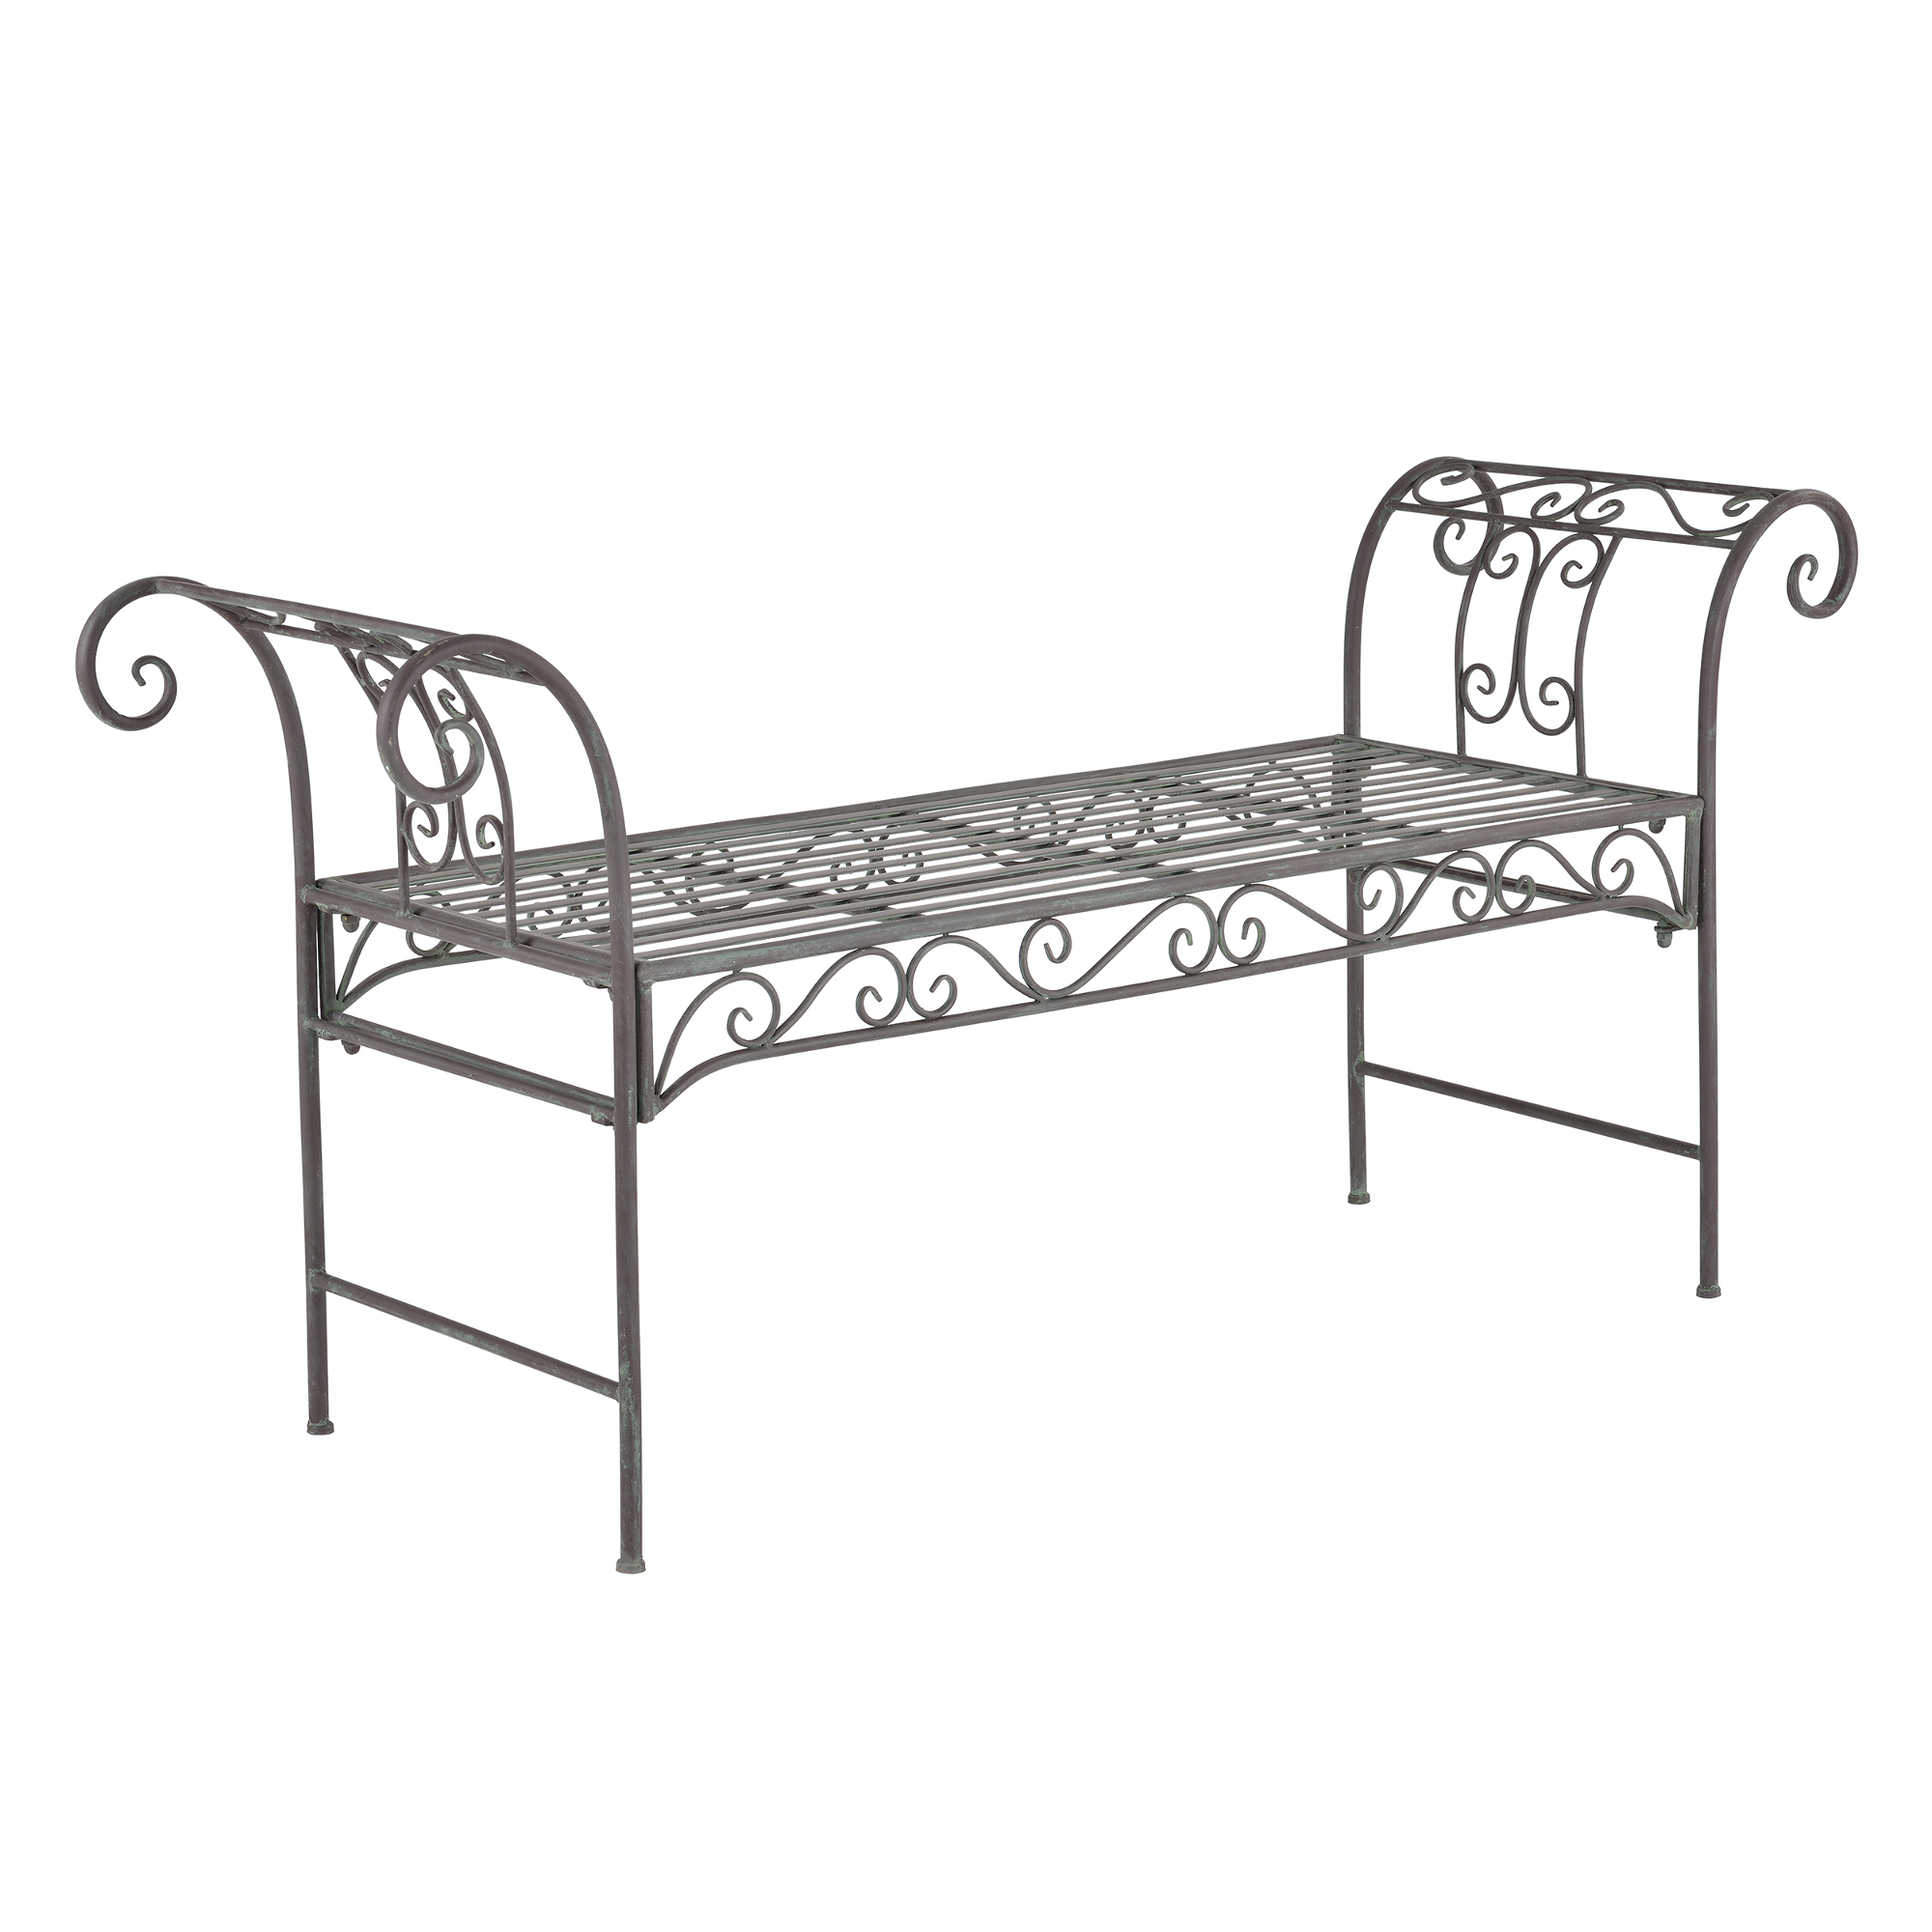 metall gartenbank bank parkbank sitzbank 70x147x46 cm eisen m bel ebay. Black Bedroom Furniture Sets. Home Design Ideas